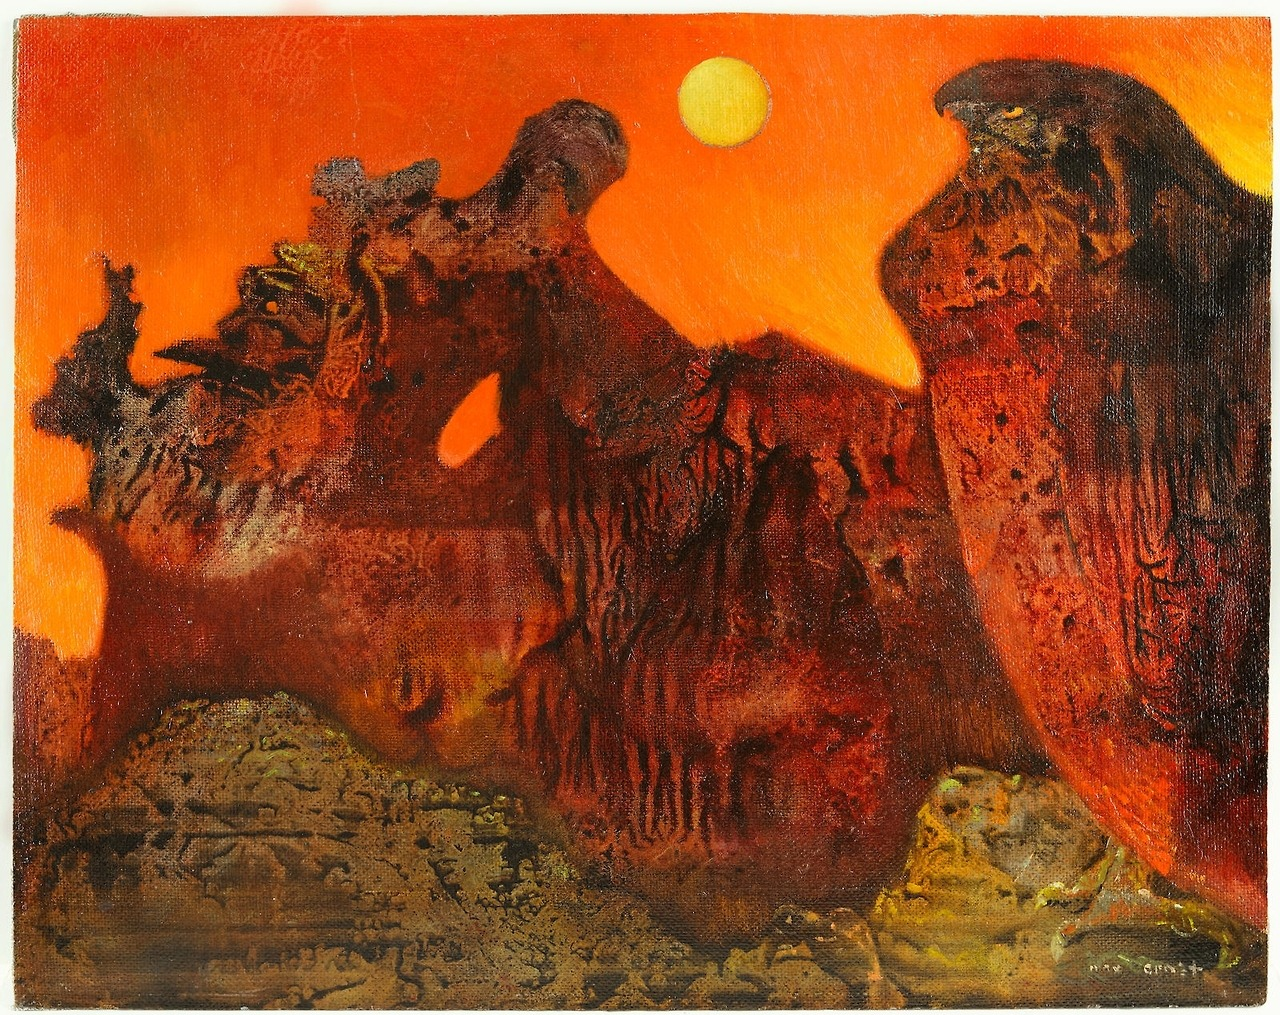 "thunderstruck9: ""Max Ernst (German, 1891-1976), Ohne titel (Sedona Landschaft) [Untitled (Sedona Landscape)], c.1957. Oil on masonite, 47.1 x 59.5 cm. """